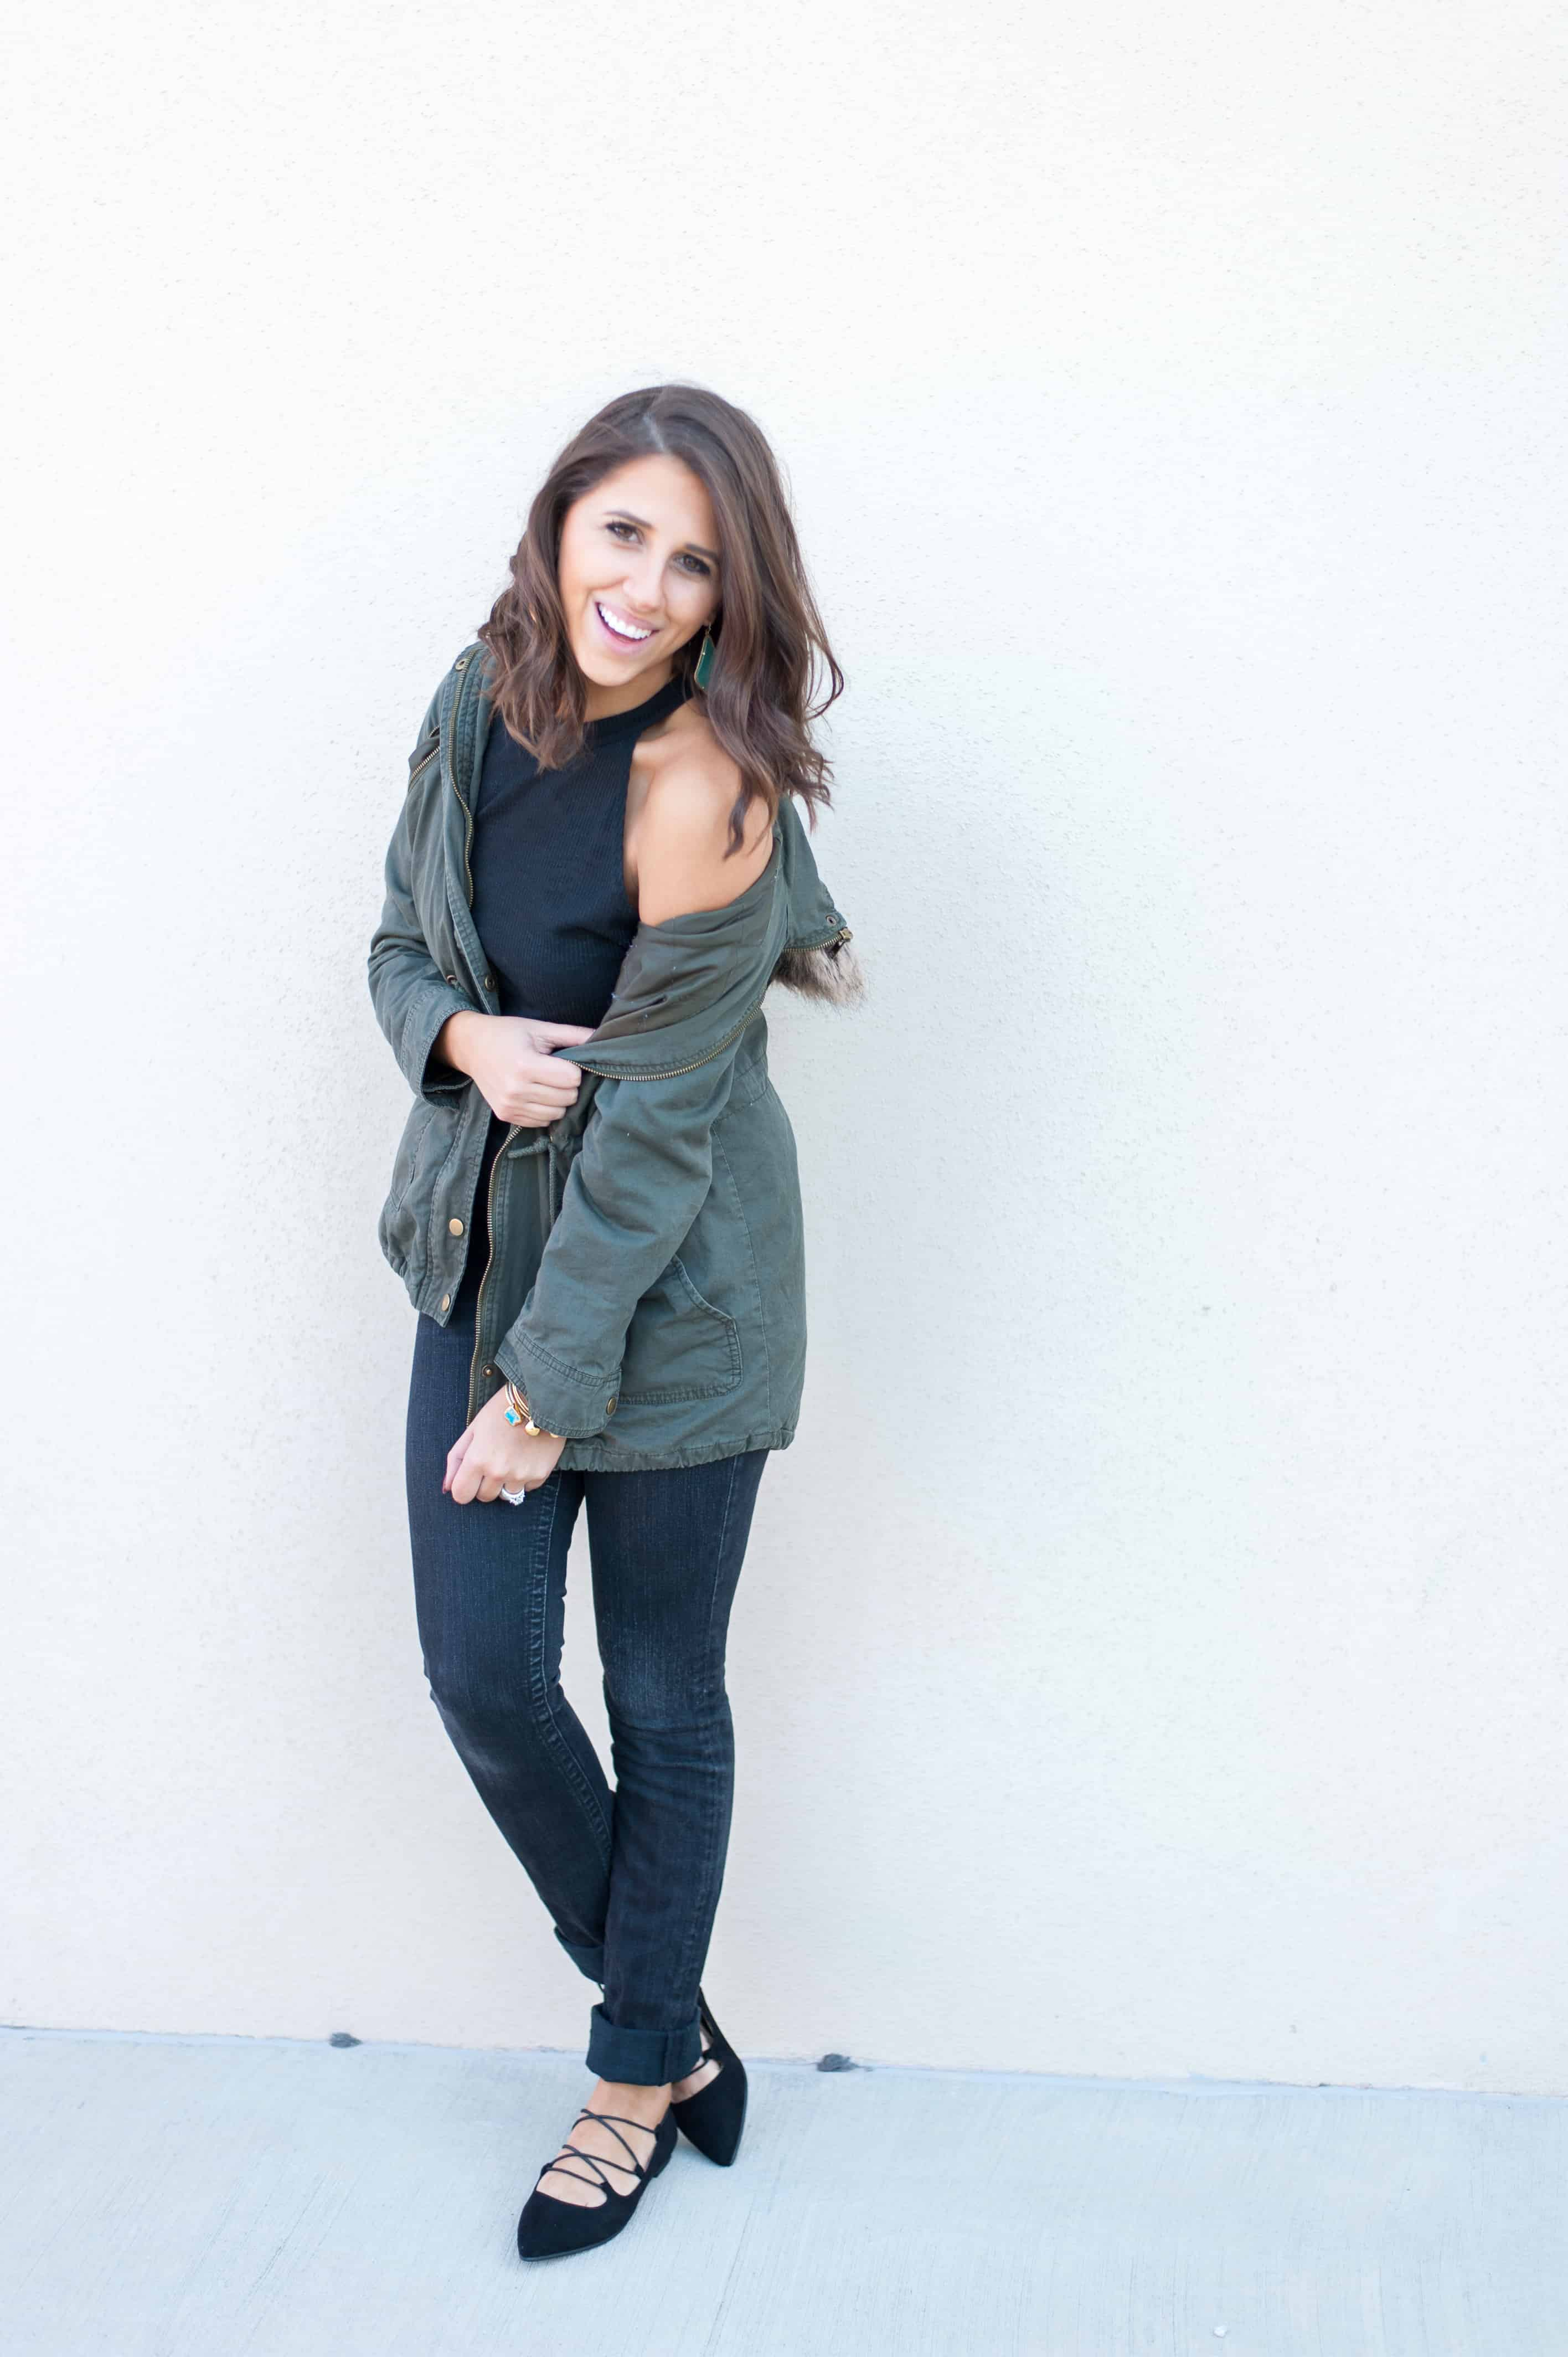 dress_up_buttercup_dede_raad_fashion_blogger_houston (3 of 8)